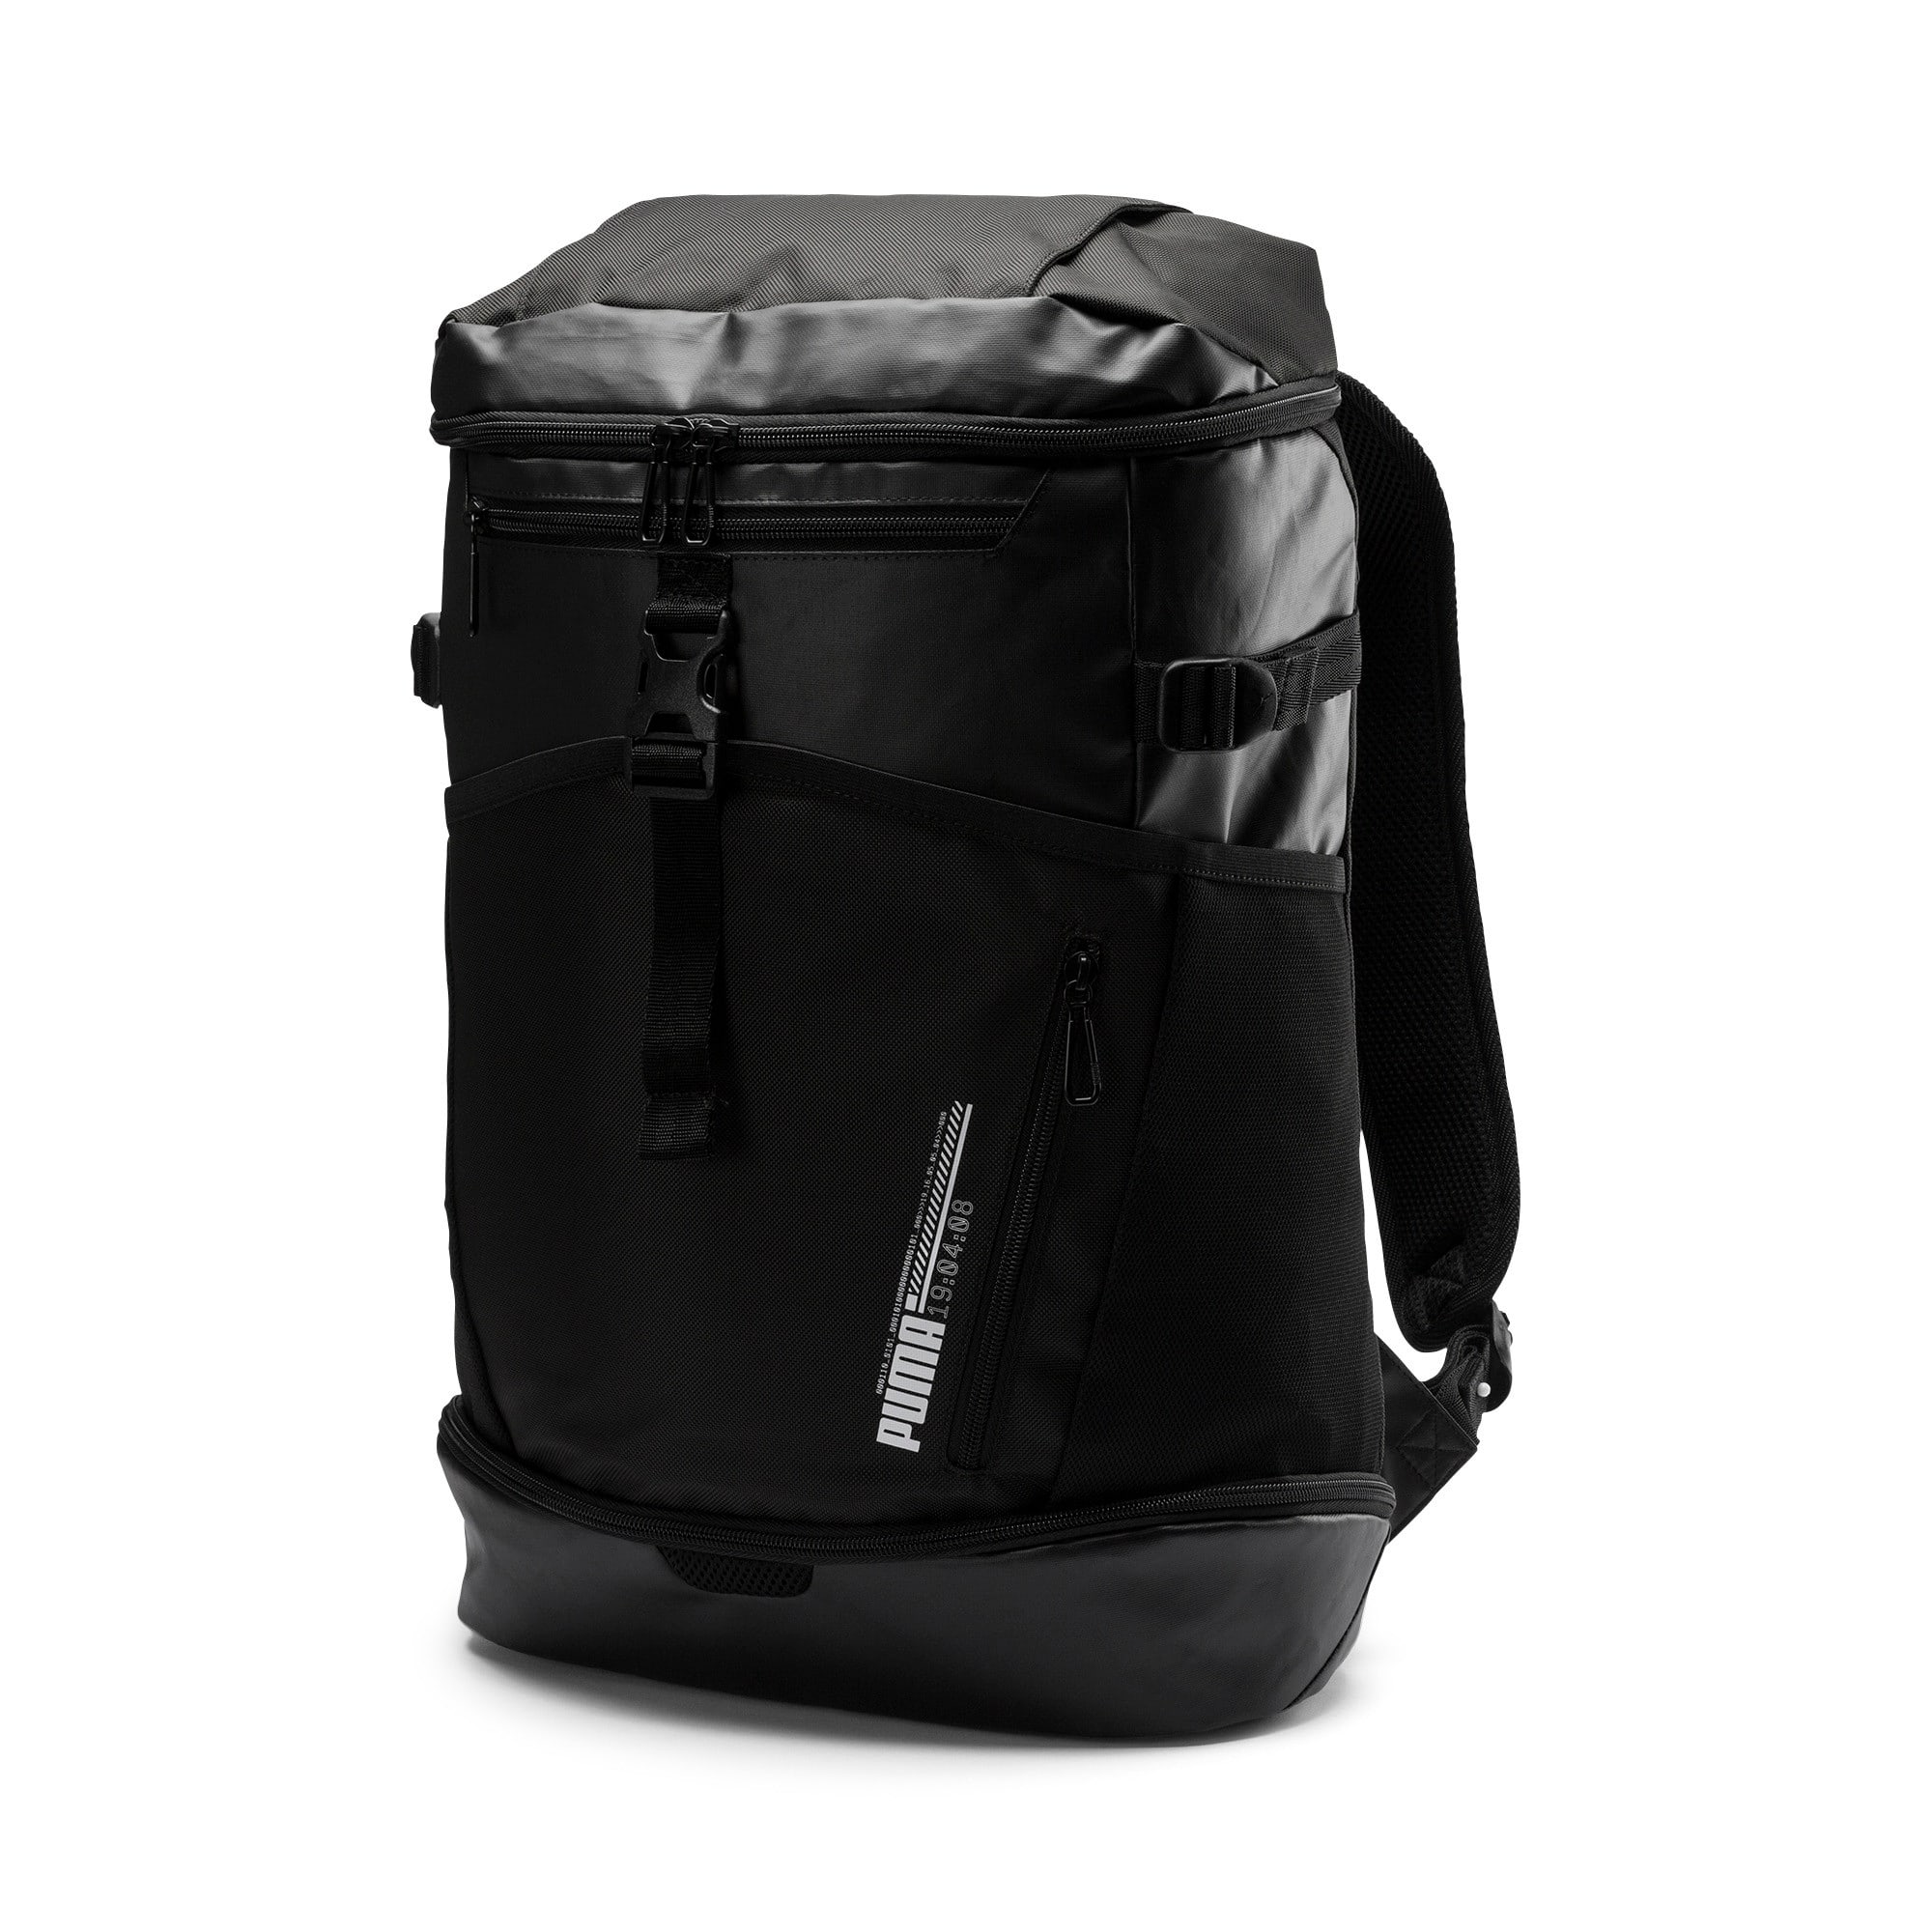 Thumbnail 1 of Energy Premium Backpack, Puma Black, medium-IND